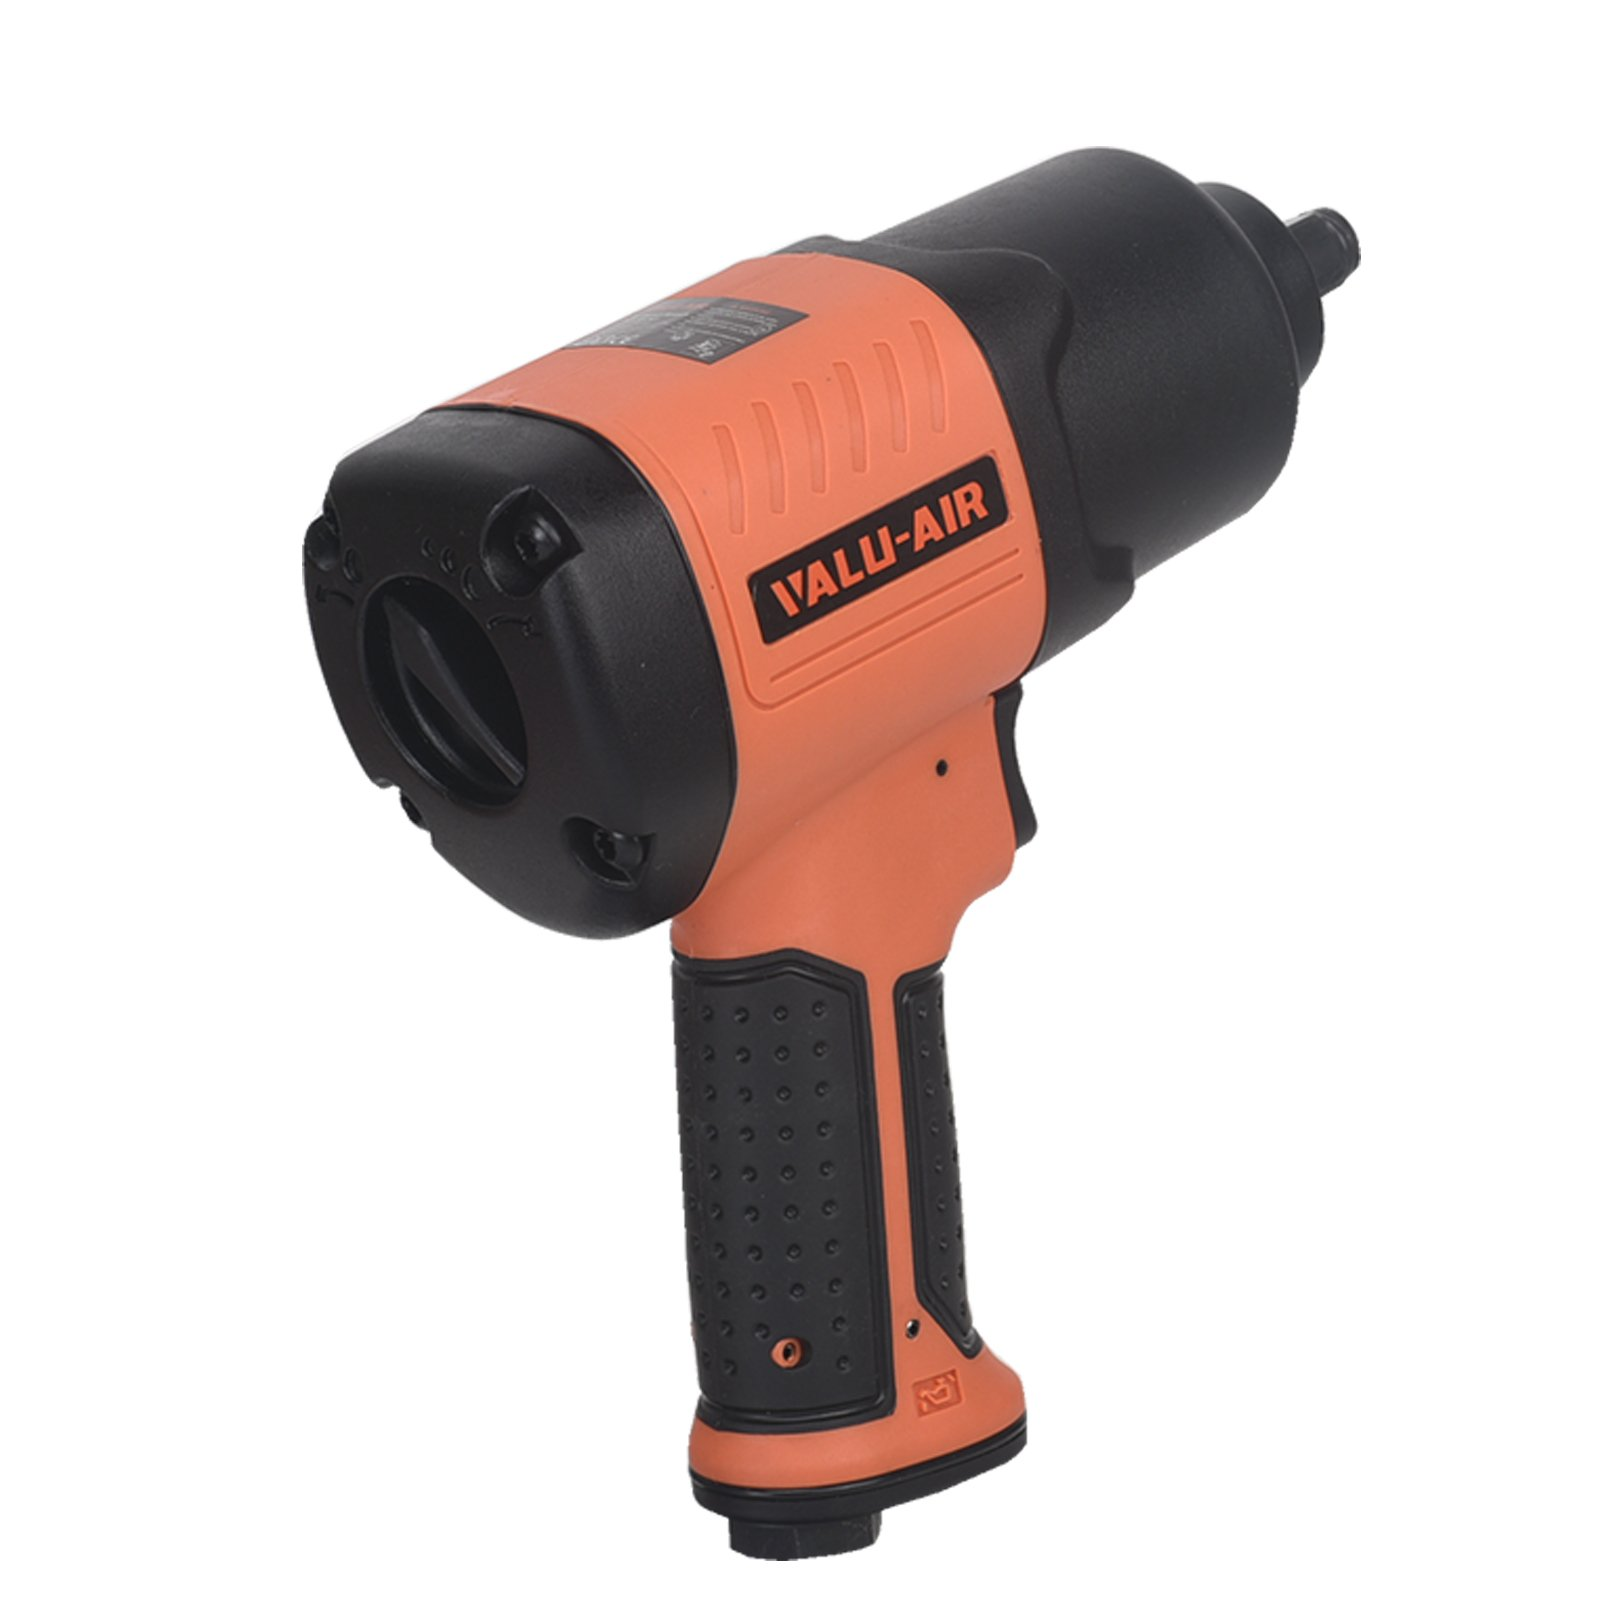 Valu-Air RP17407 1/2 Twin Hammer Air Impact Wrench by Valu-Air (Image #2)